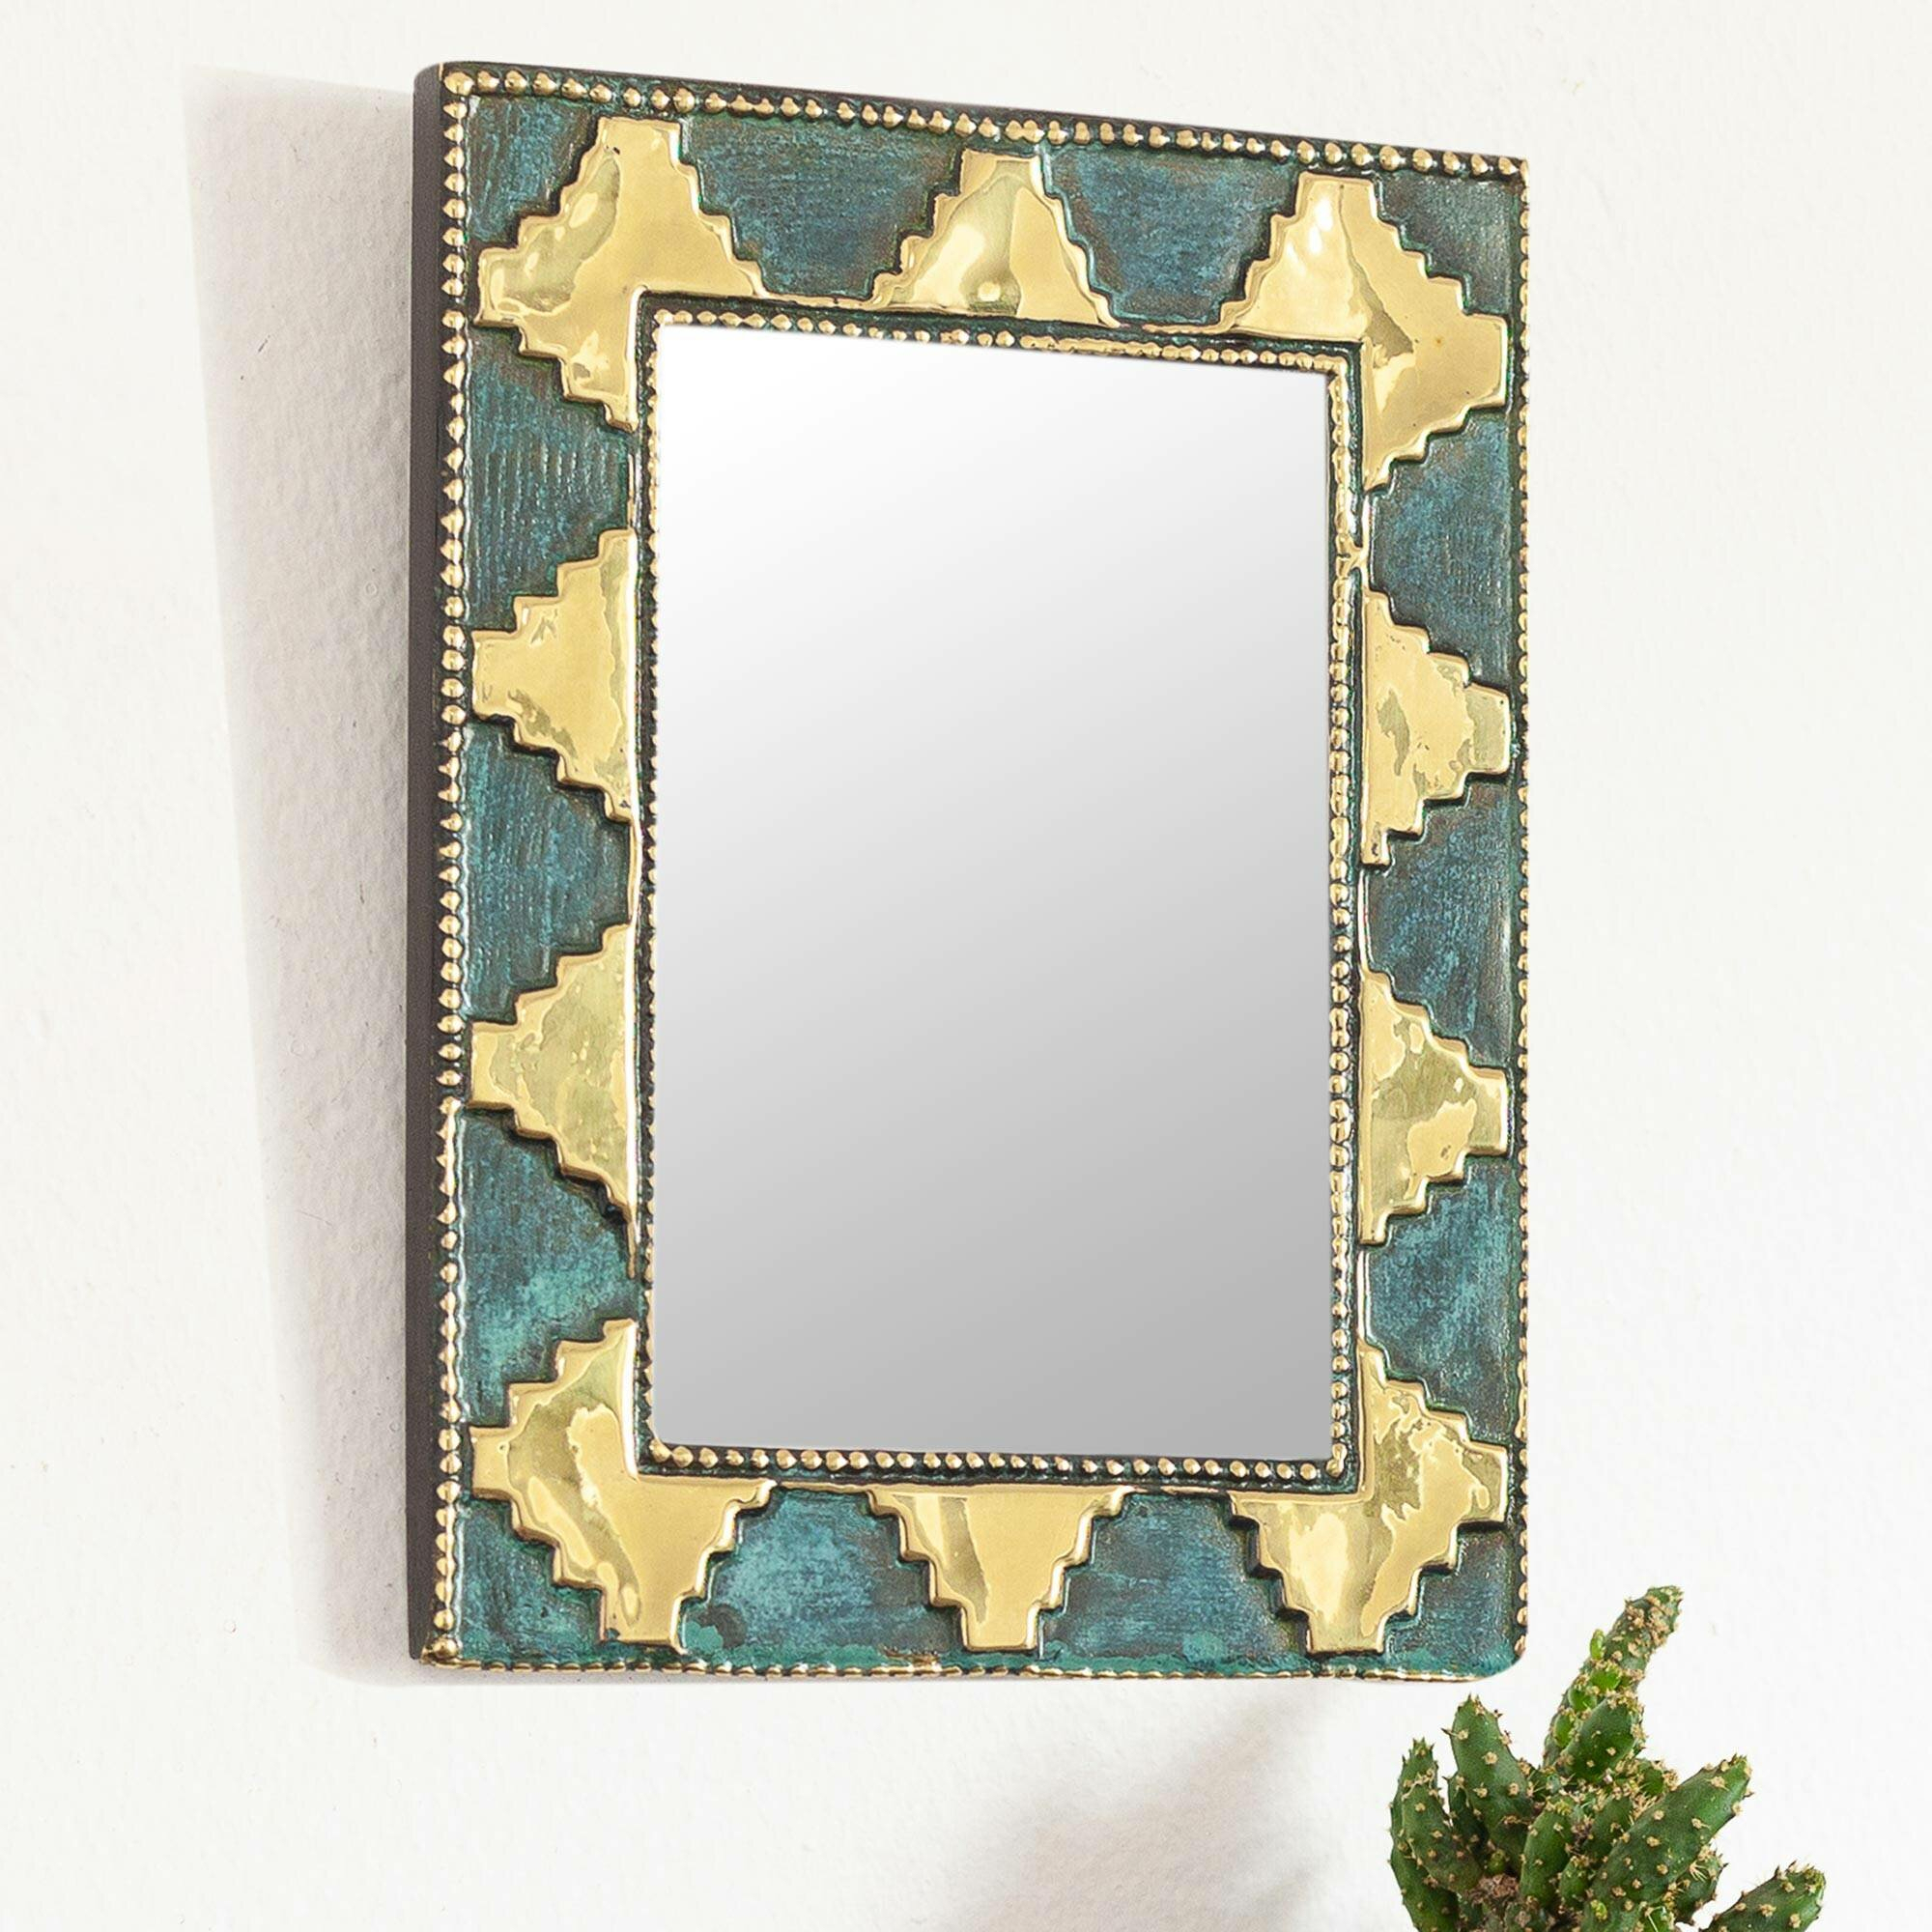 Nathalia Pre-Hispanic Pyramids Traditional Wall Mirror with Boyers Wall Mirrors (Image 22 of 30)